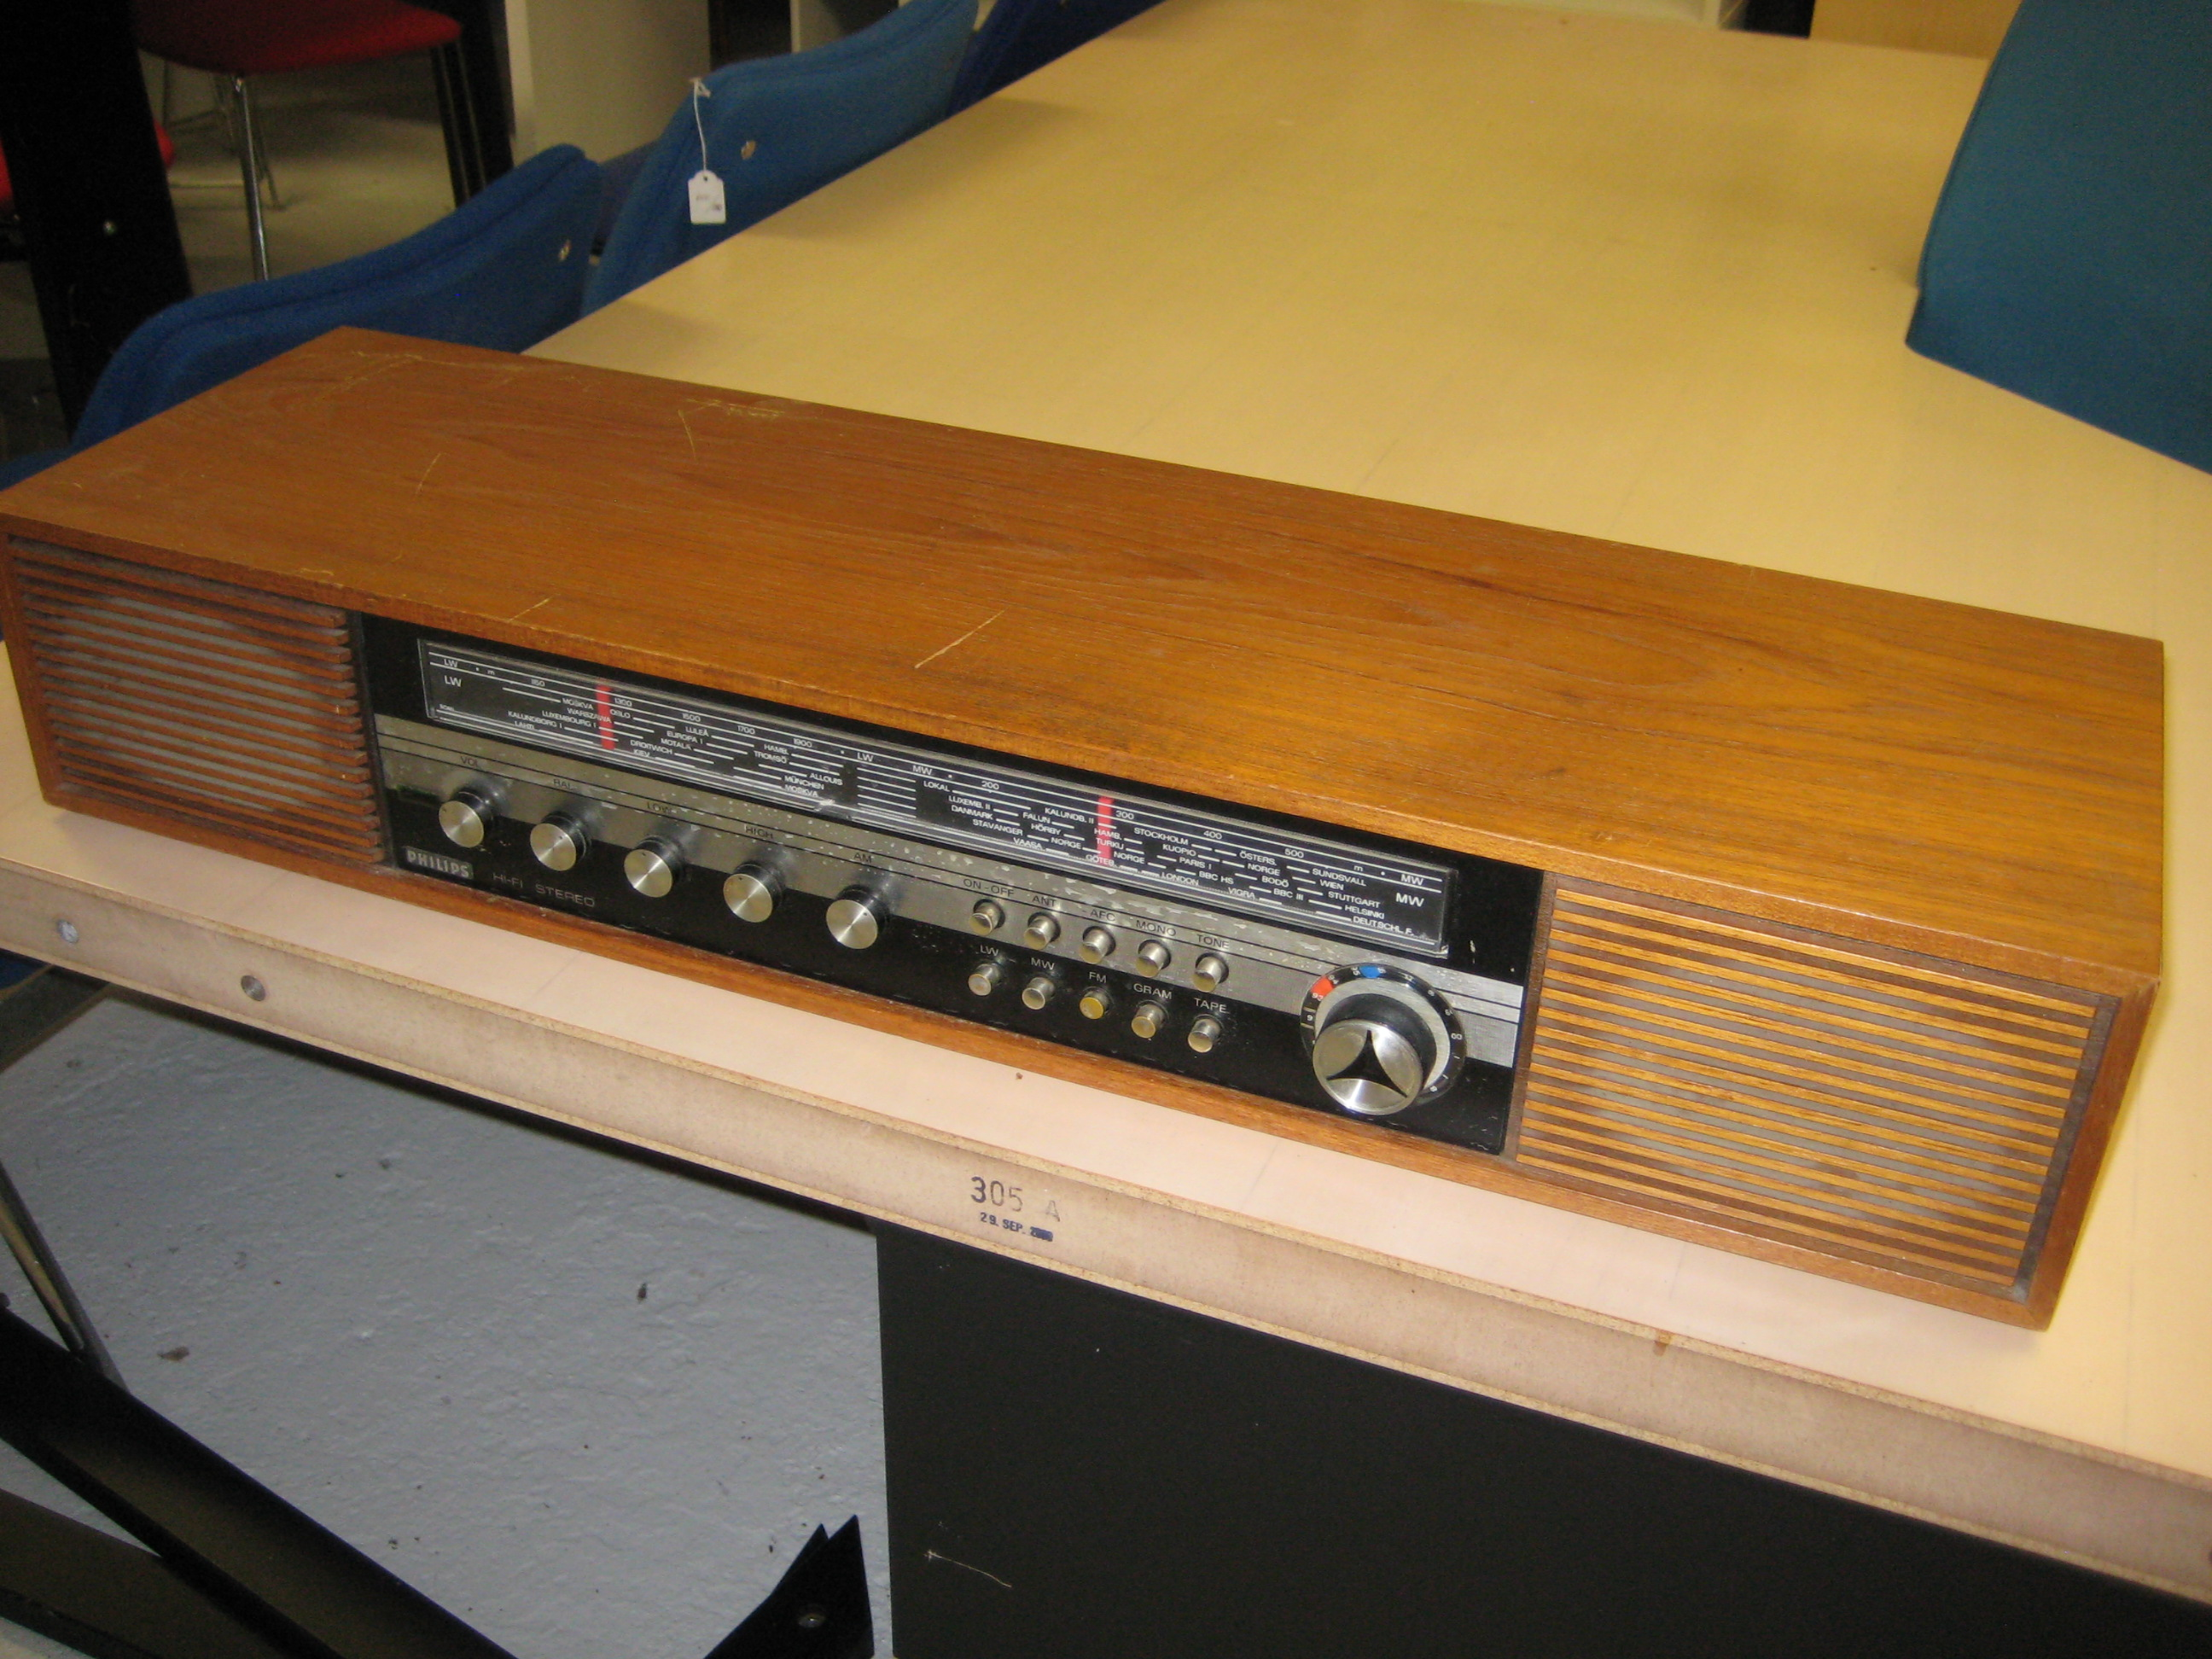 Philips stereo radio